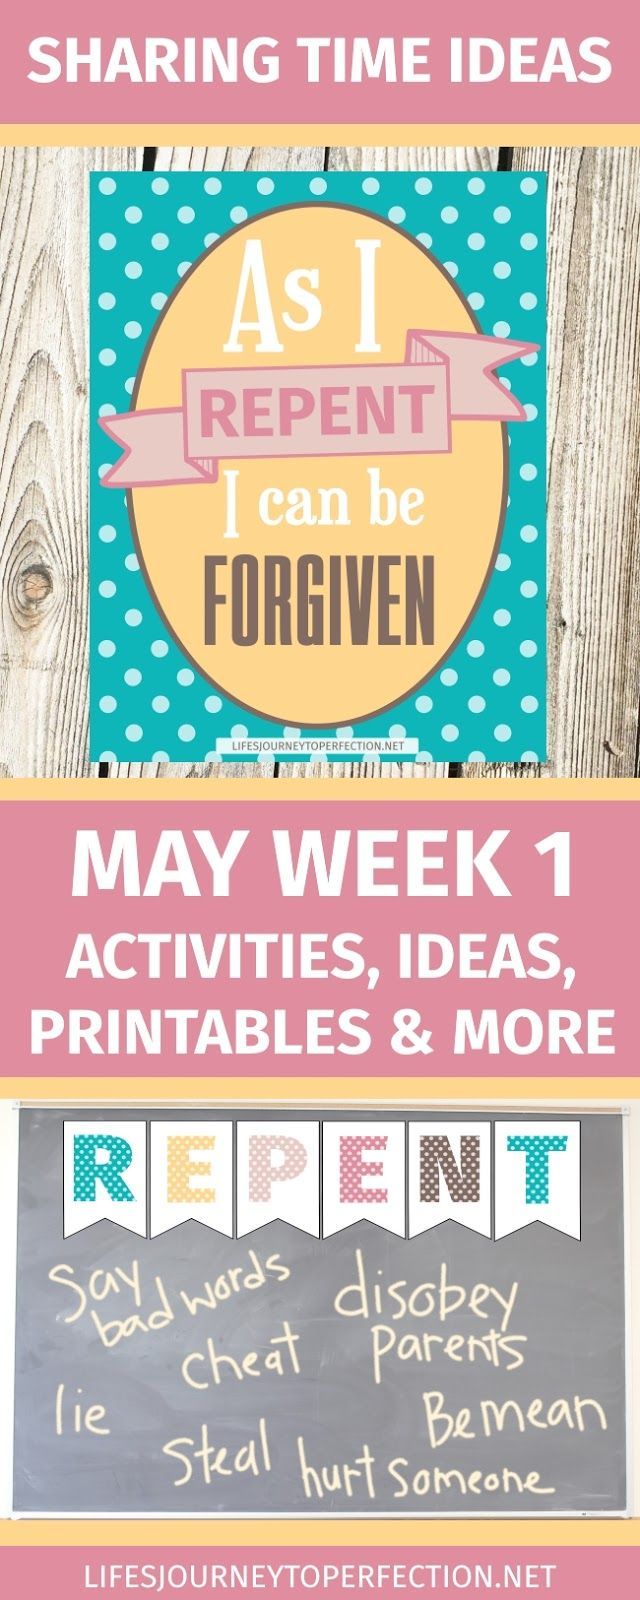 SHARING TIME IDEAS FOR LDS PRIMARY MAY WEEK 1 THEME AS I REPENT I CAN BE FORGIVEN ACTIVITIES, IDEAS, PRINTABLES AND MORE